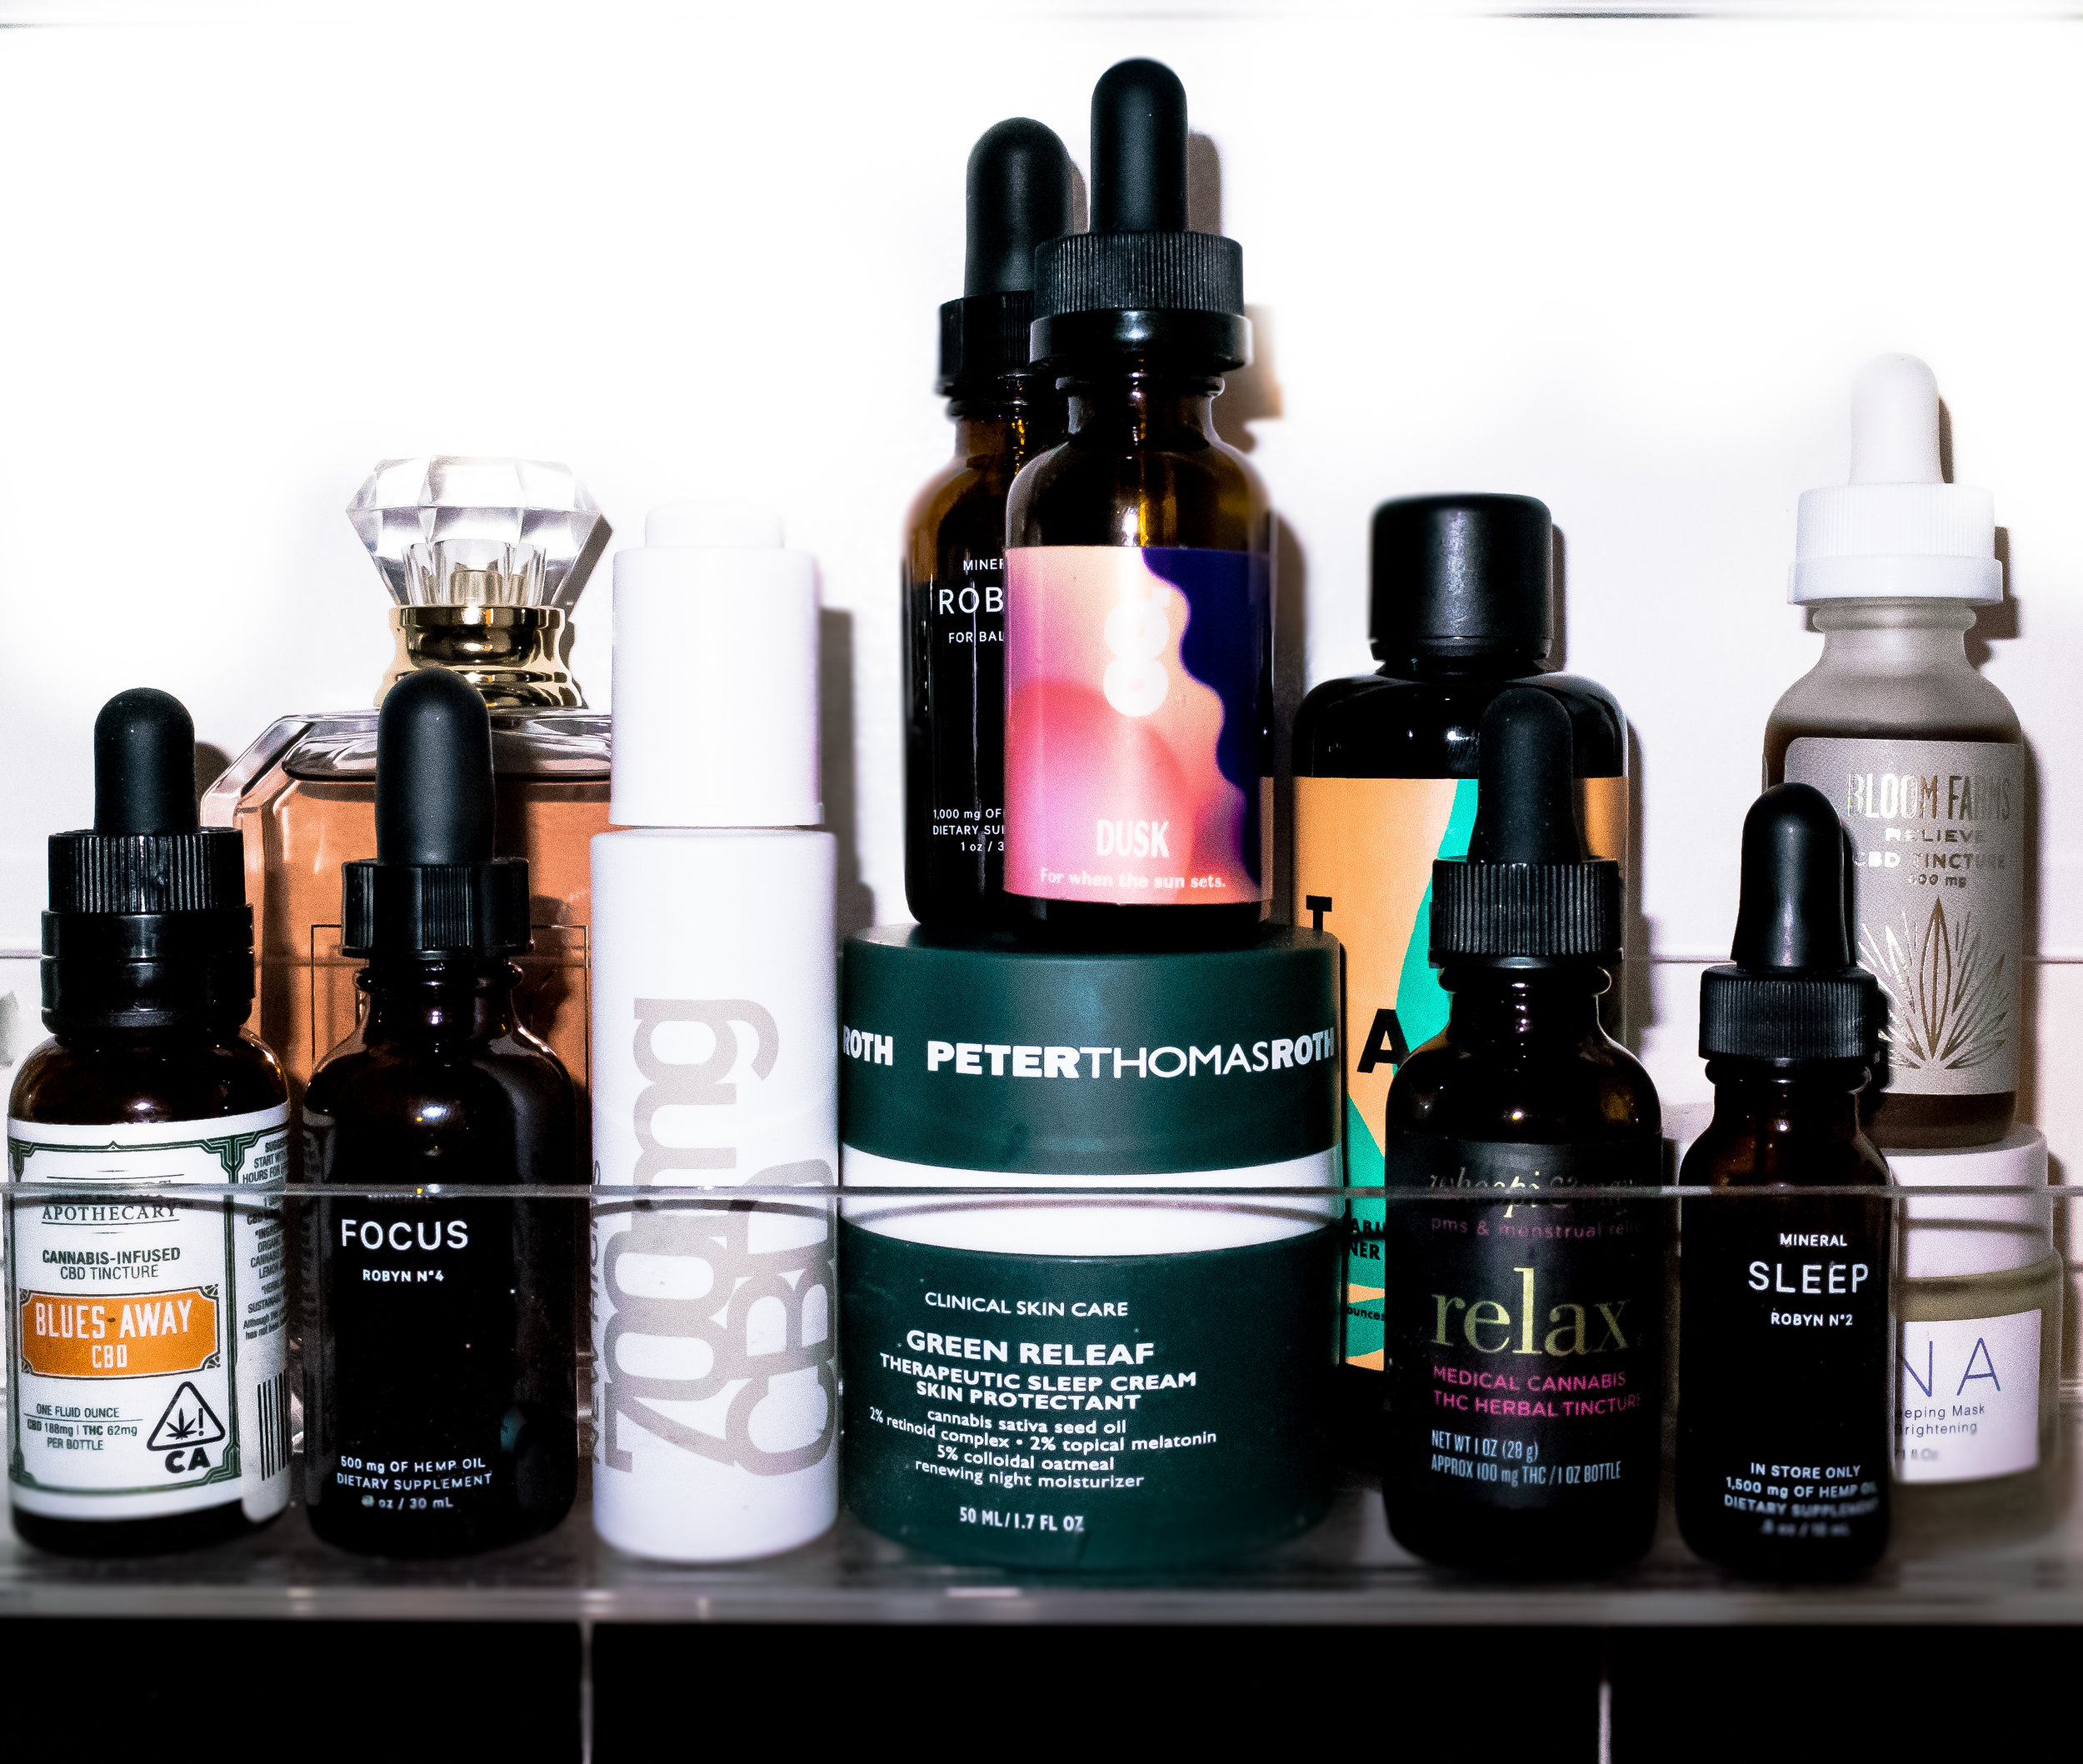 The Nice List - Ever wonder what tincture to use? Preroll? Vape? Lotion to slather all over your brain and body? We got you covered with our biweekly reviews of the nicest products out there.